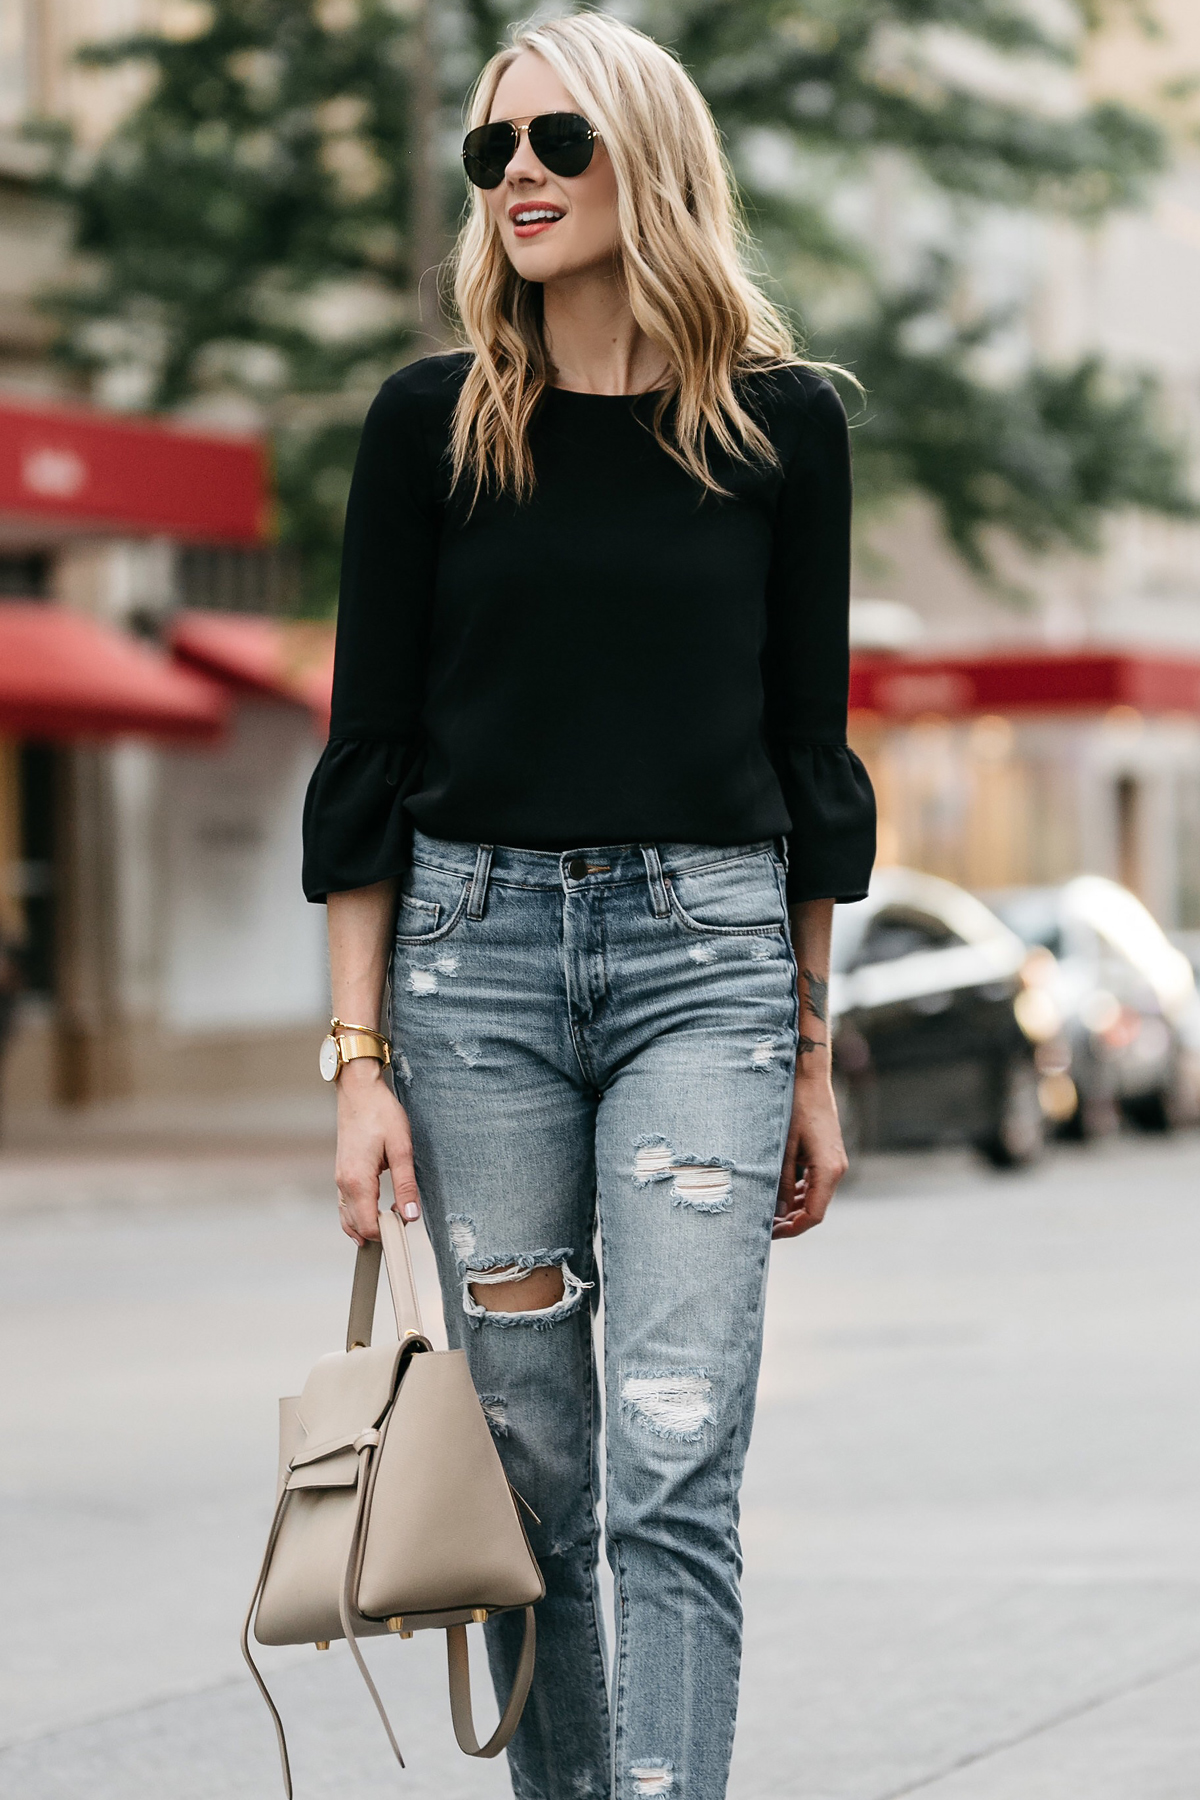 Fashion Jackson, Dallas Blogger, Fashion Blogger, Street Style, Black Bell Sleeve Top, Denim Ripped Mom Jeans, Celine Belt Bag, Celine Aviator Sunglasses